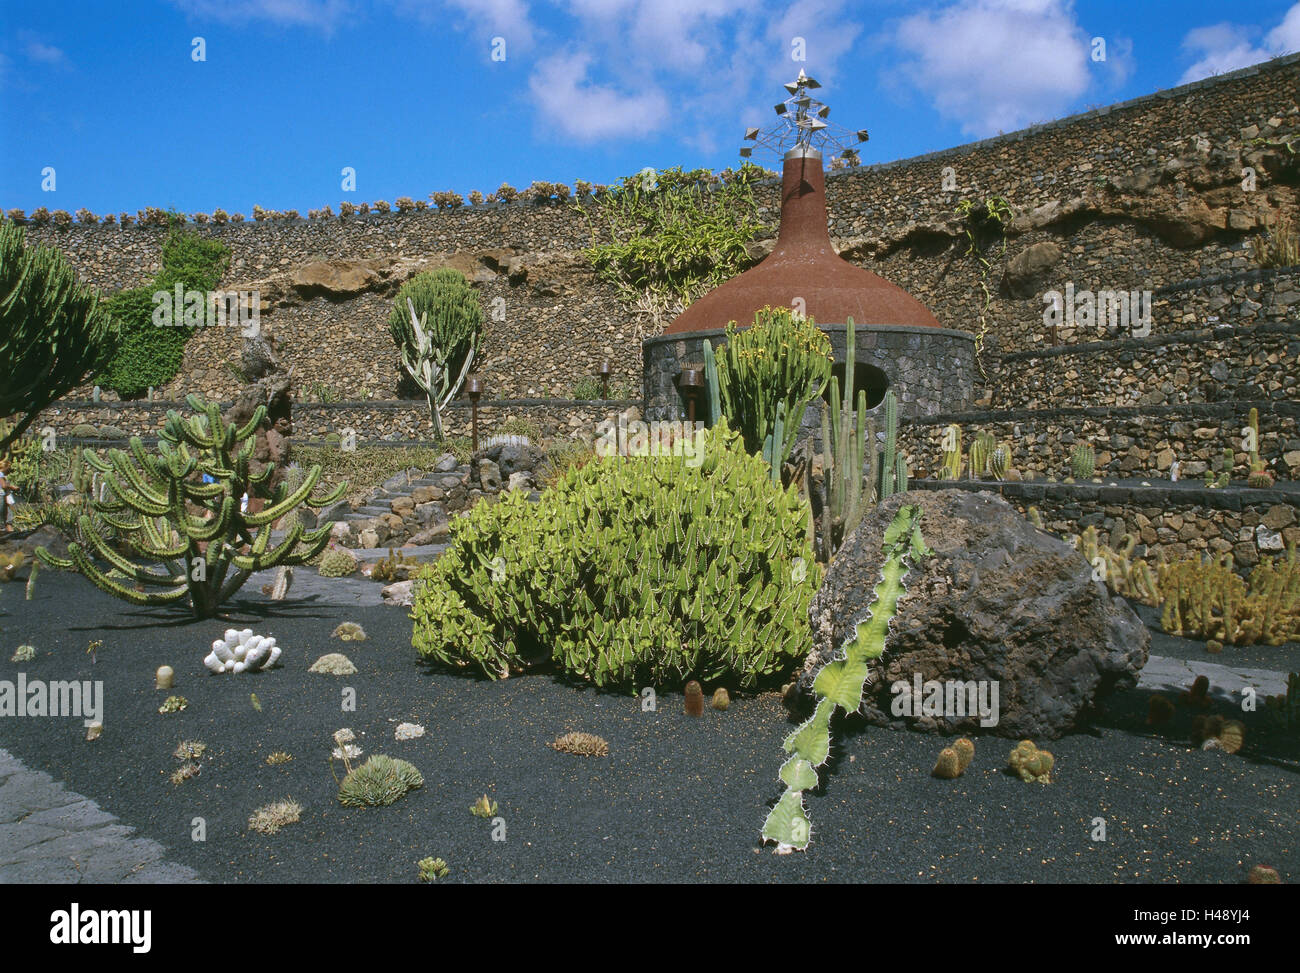 spain the canaries island lanzarote guatize jardin de cactus cactus garden cactus garden cacti cactus plants cactaceae variety